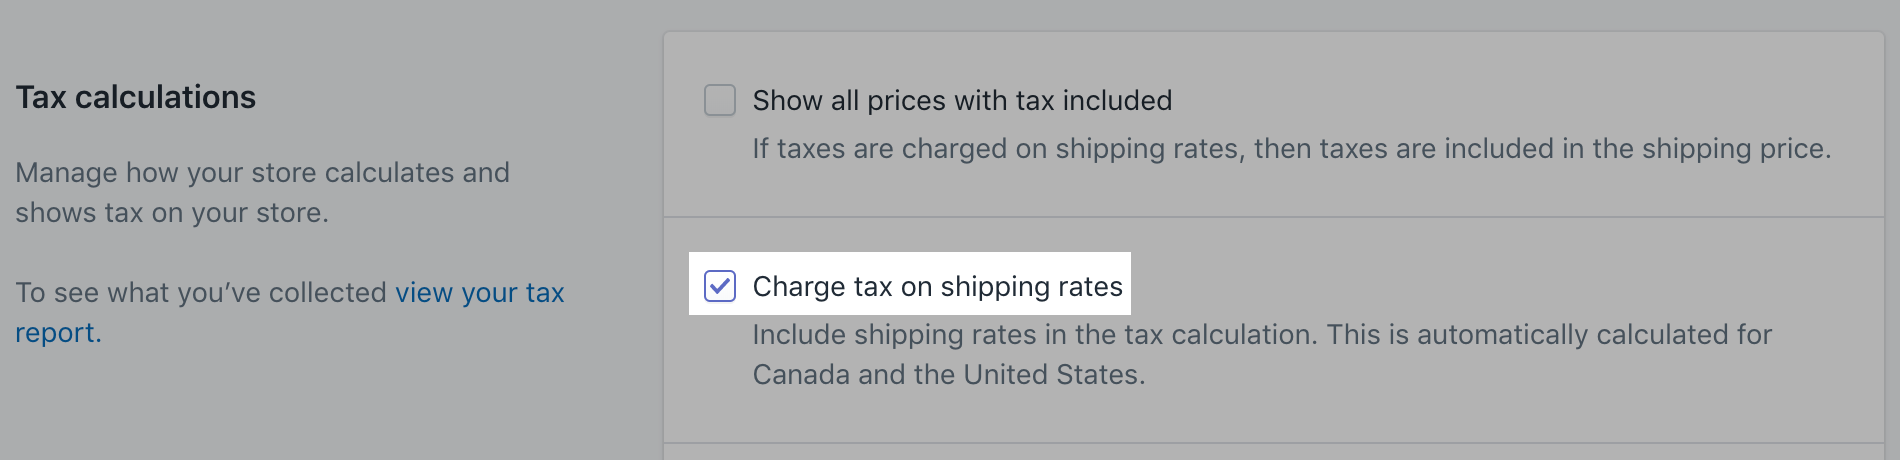 Check charge taxes on shipping rates in Tax settings